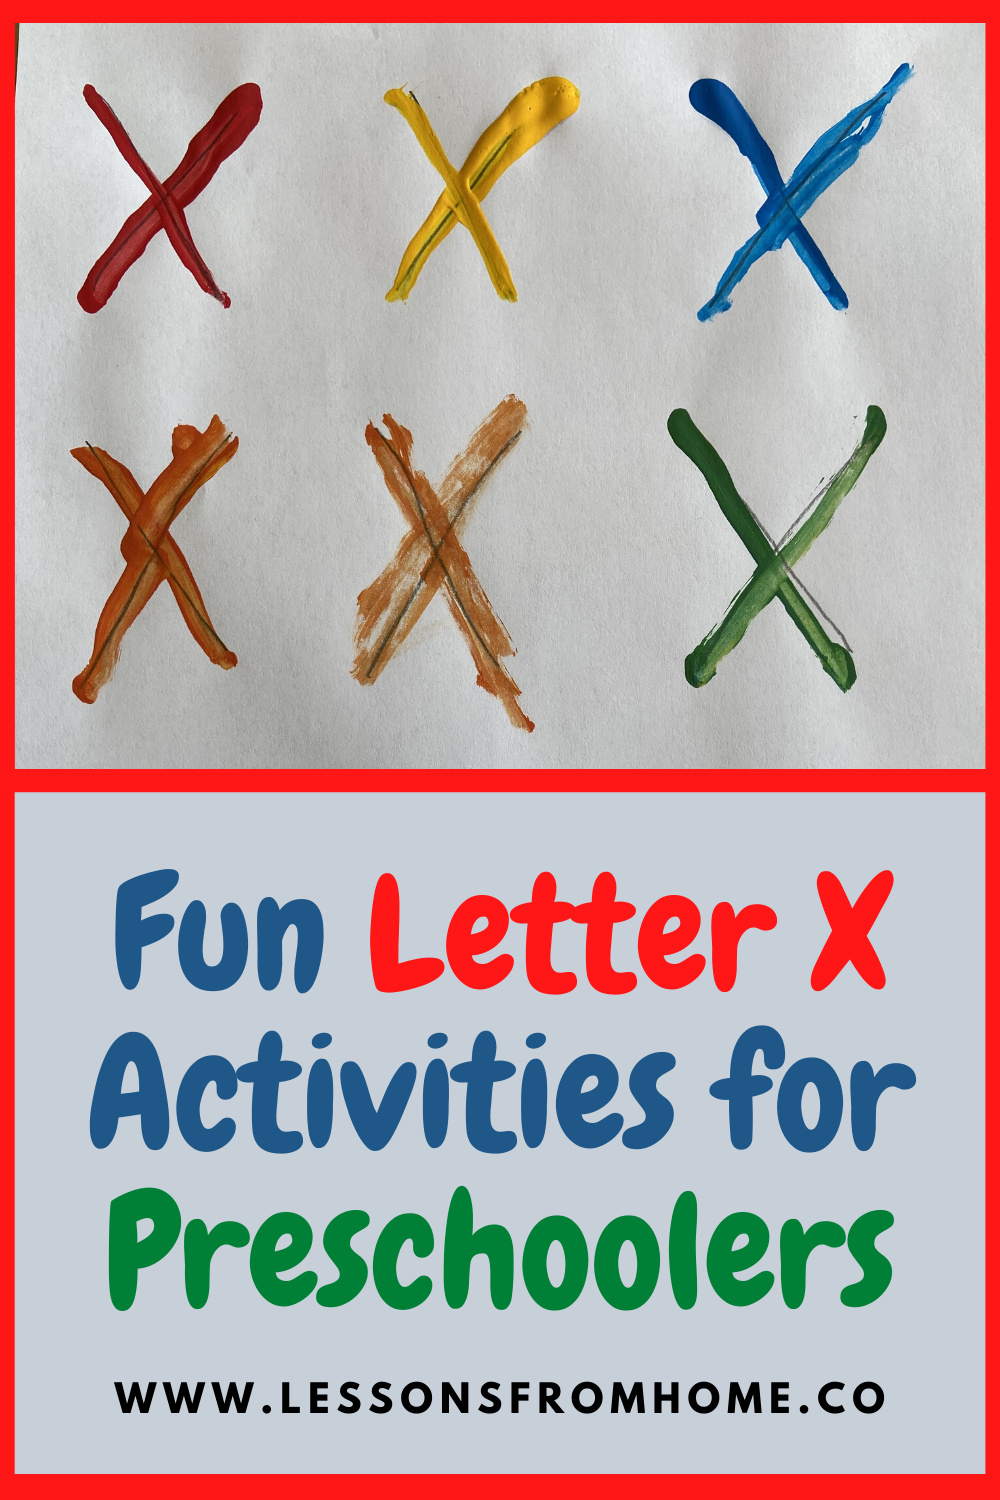 Simple And Fun Letter X Activities For Preschoolers Preschool Activities Letter Activities Preschool Preschool Learning Activities [ 1500 x 1000 Pixel ]